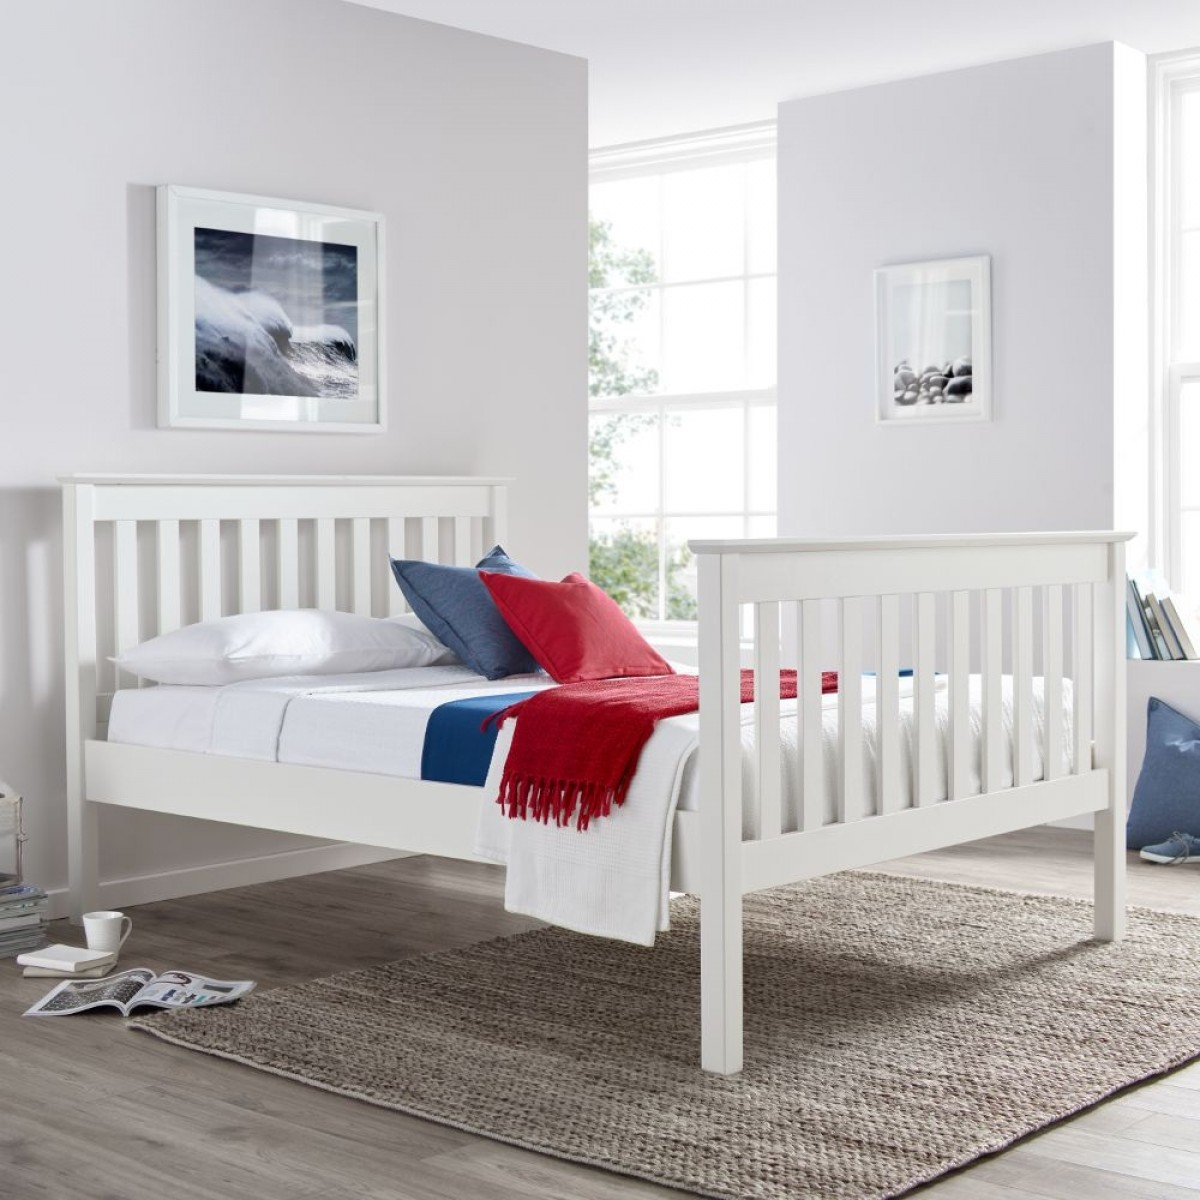 Lisbon White Finish Solid Pine Wooden Bed Frame 4ft Small Double